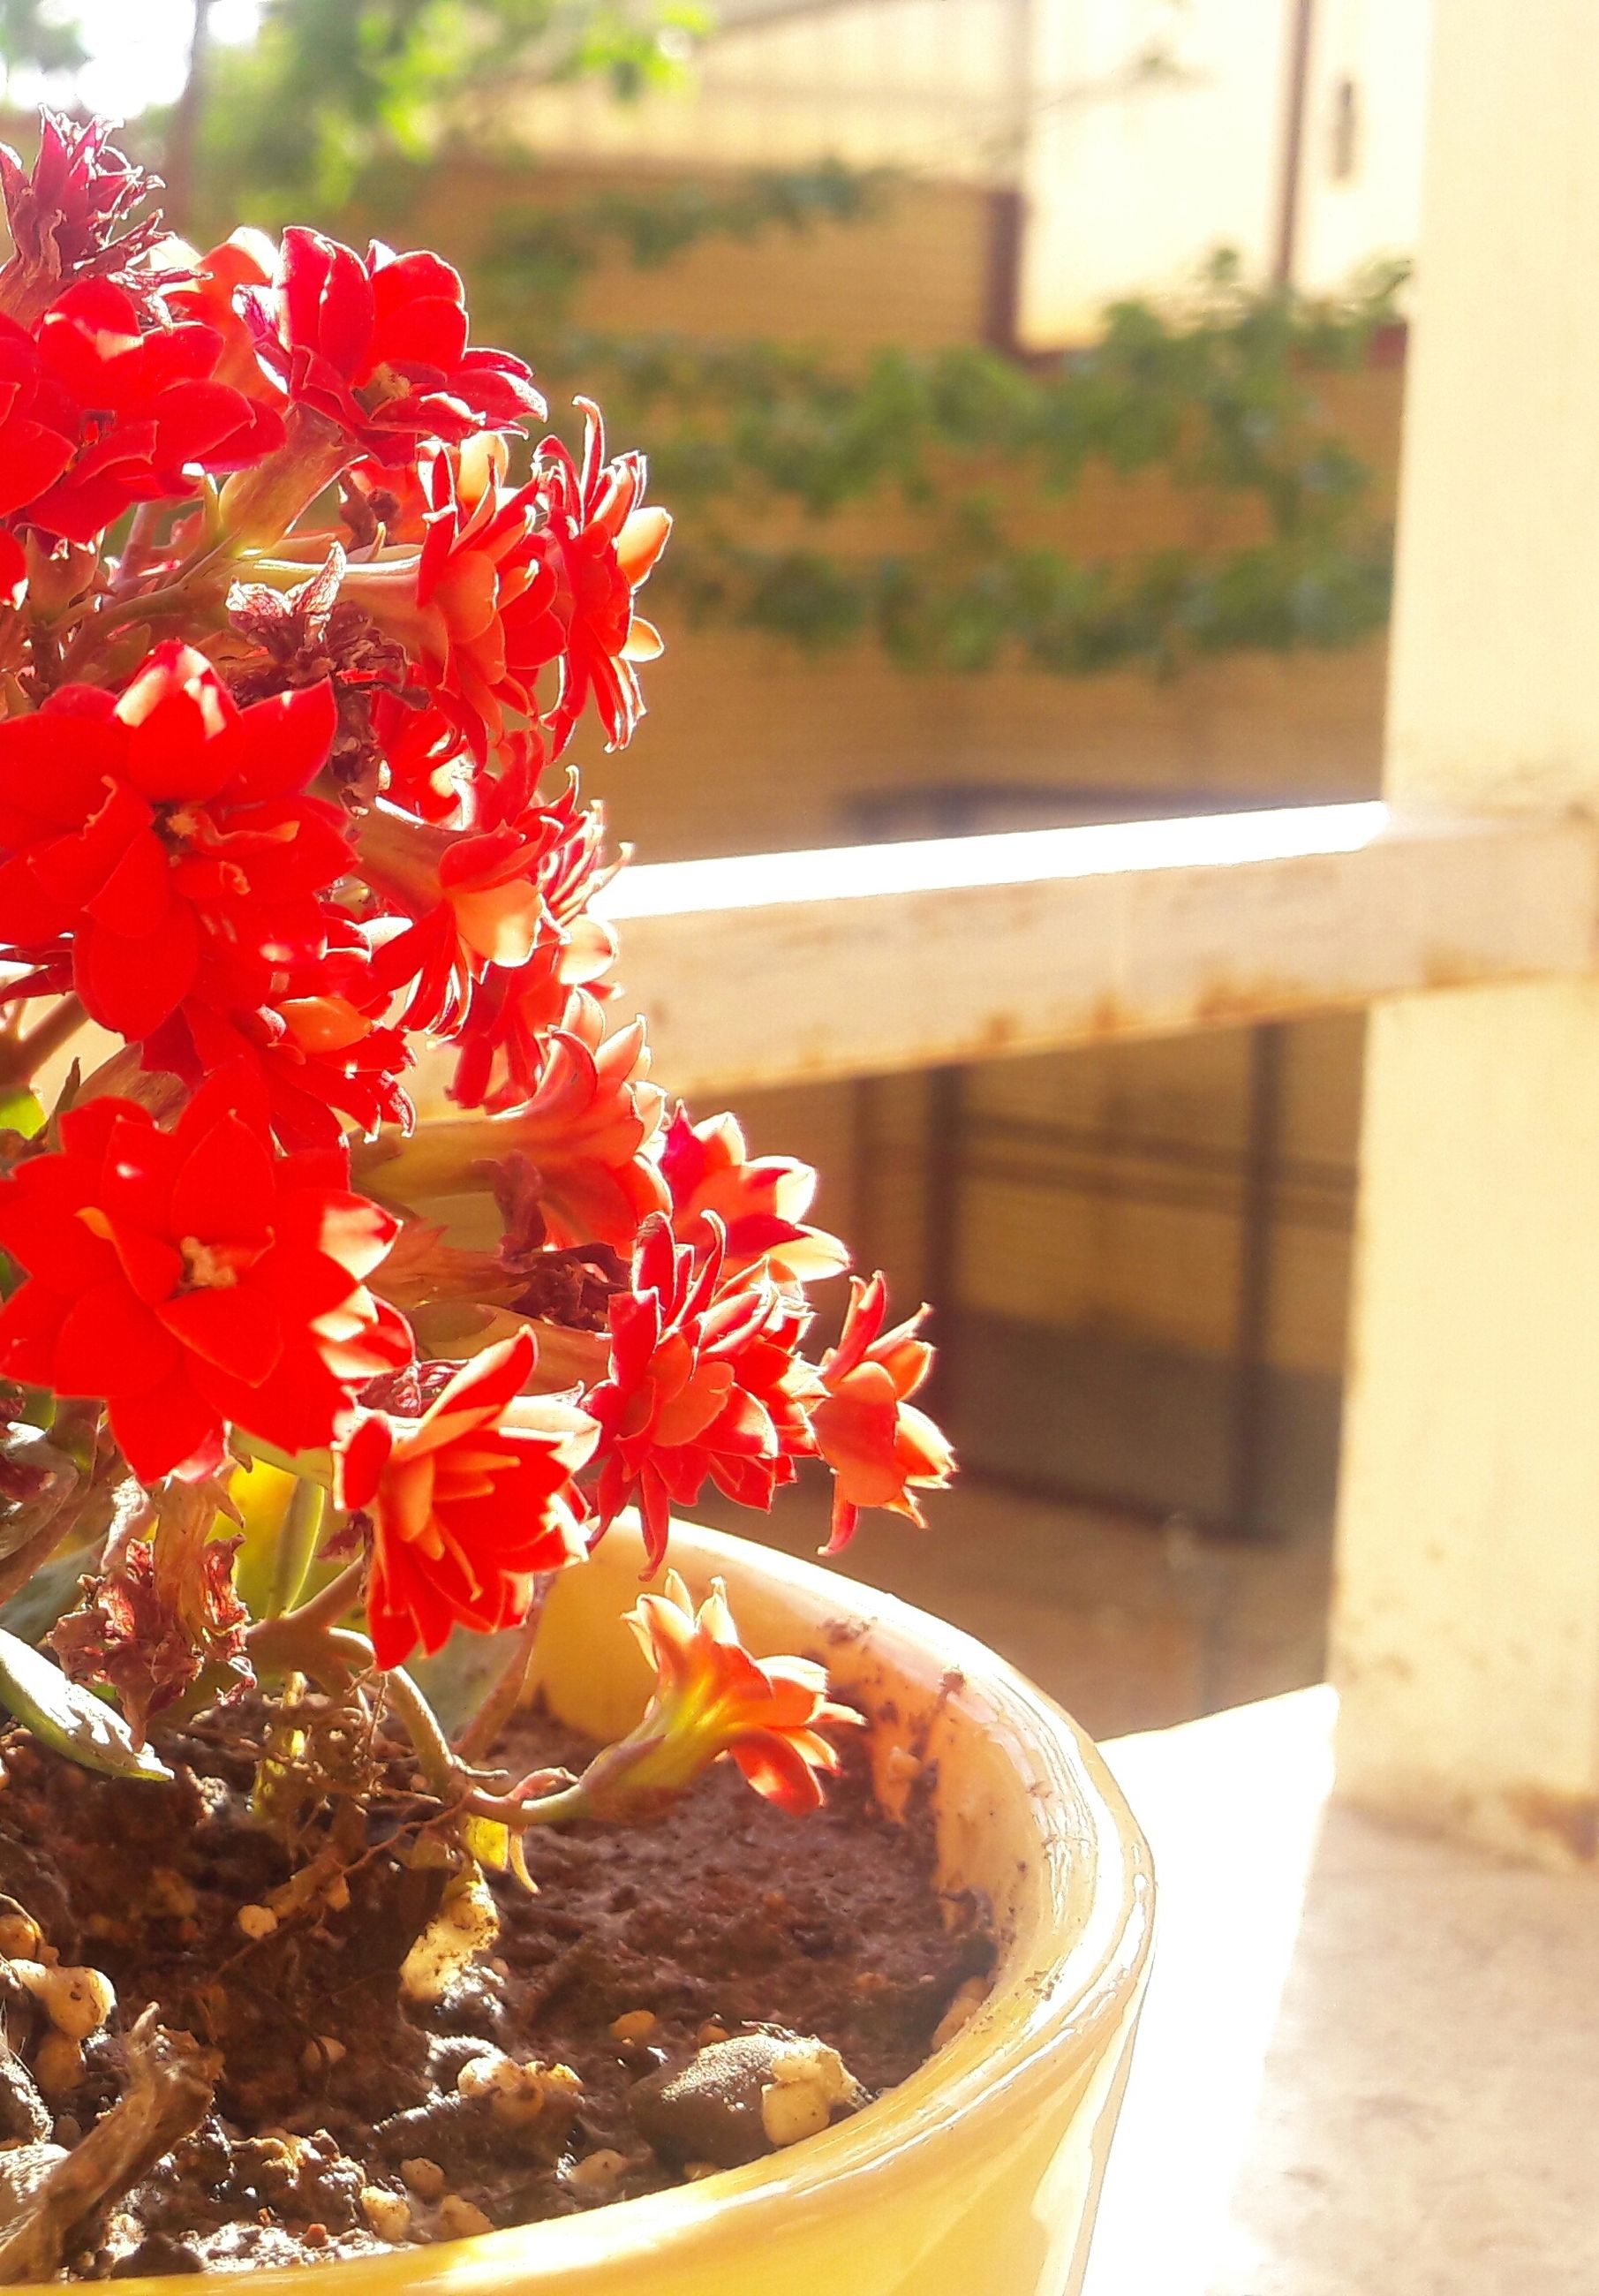 freshness, focus on foreground, red, close-up, flower, food and drink, table, selective focus, indoors, day, no people, food, nature, fragility, ready-to-eat, still life, petal, sweet food, water